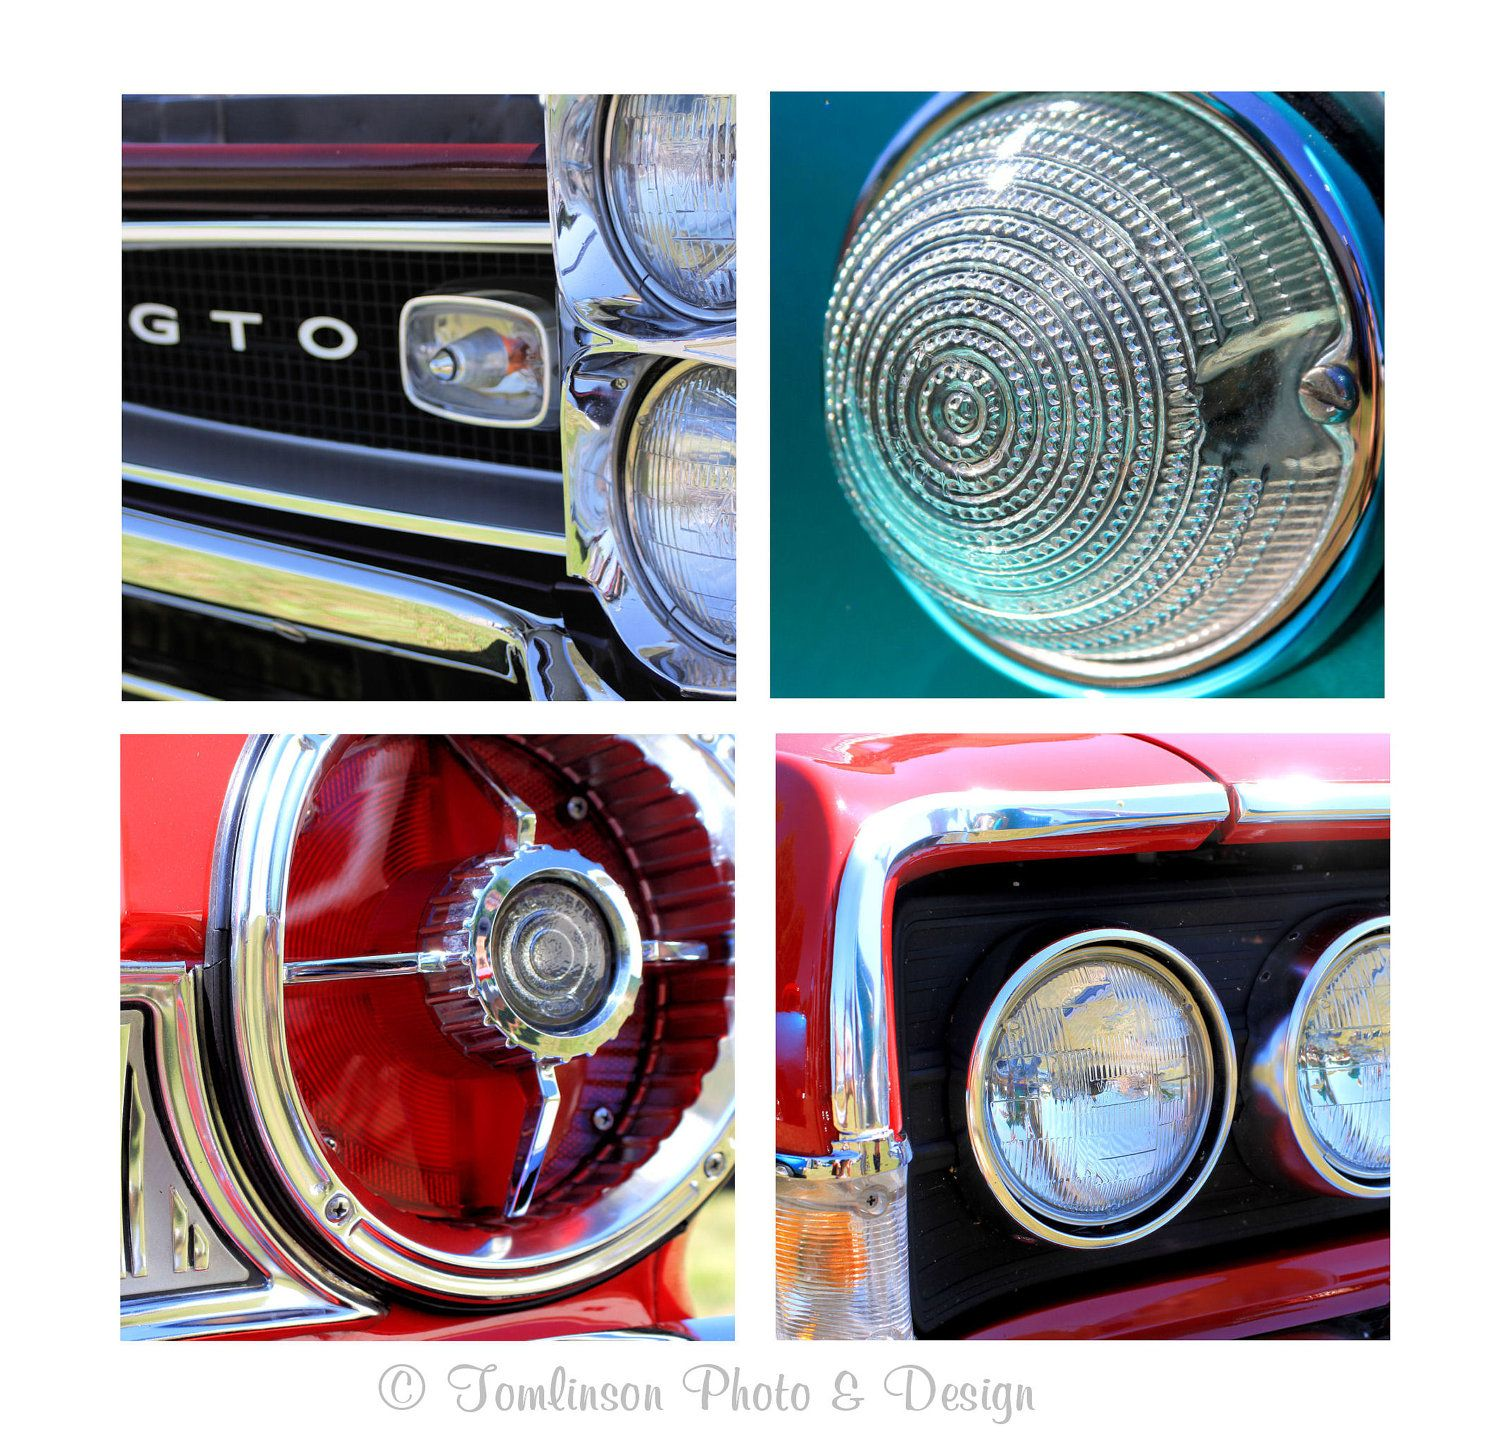 Classic car garage wall art decor for men by tomlinsonphotodesign